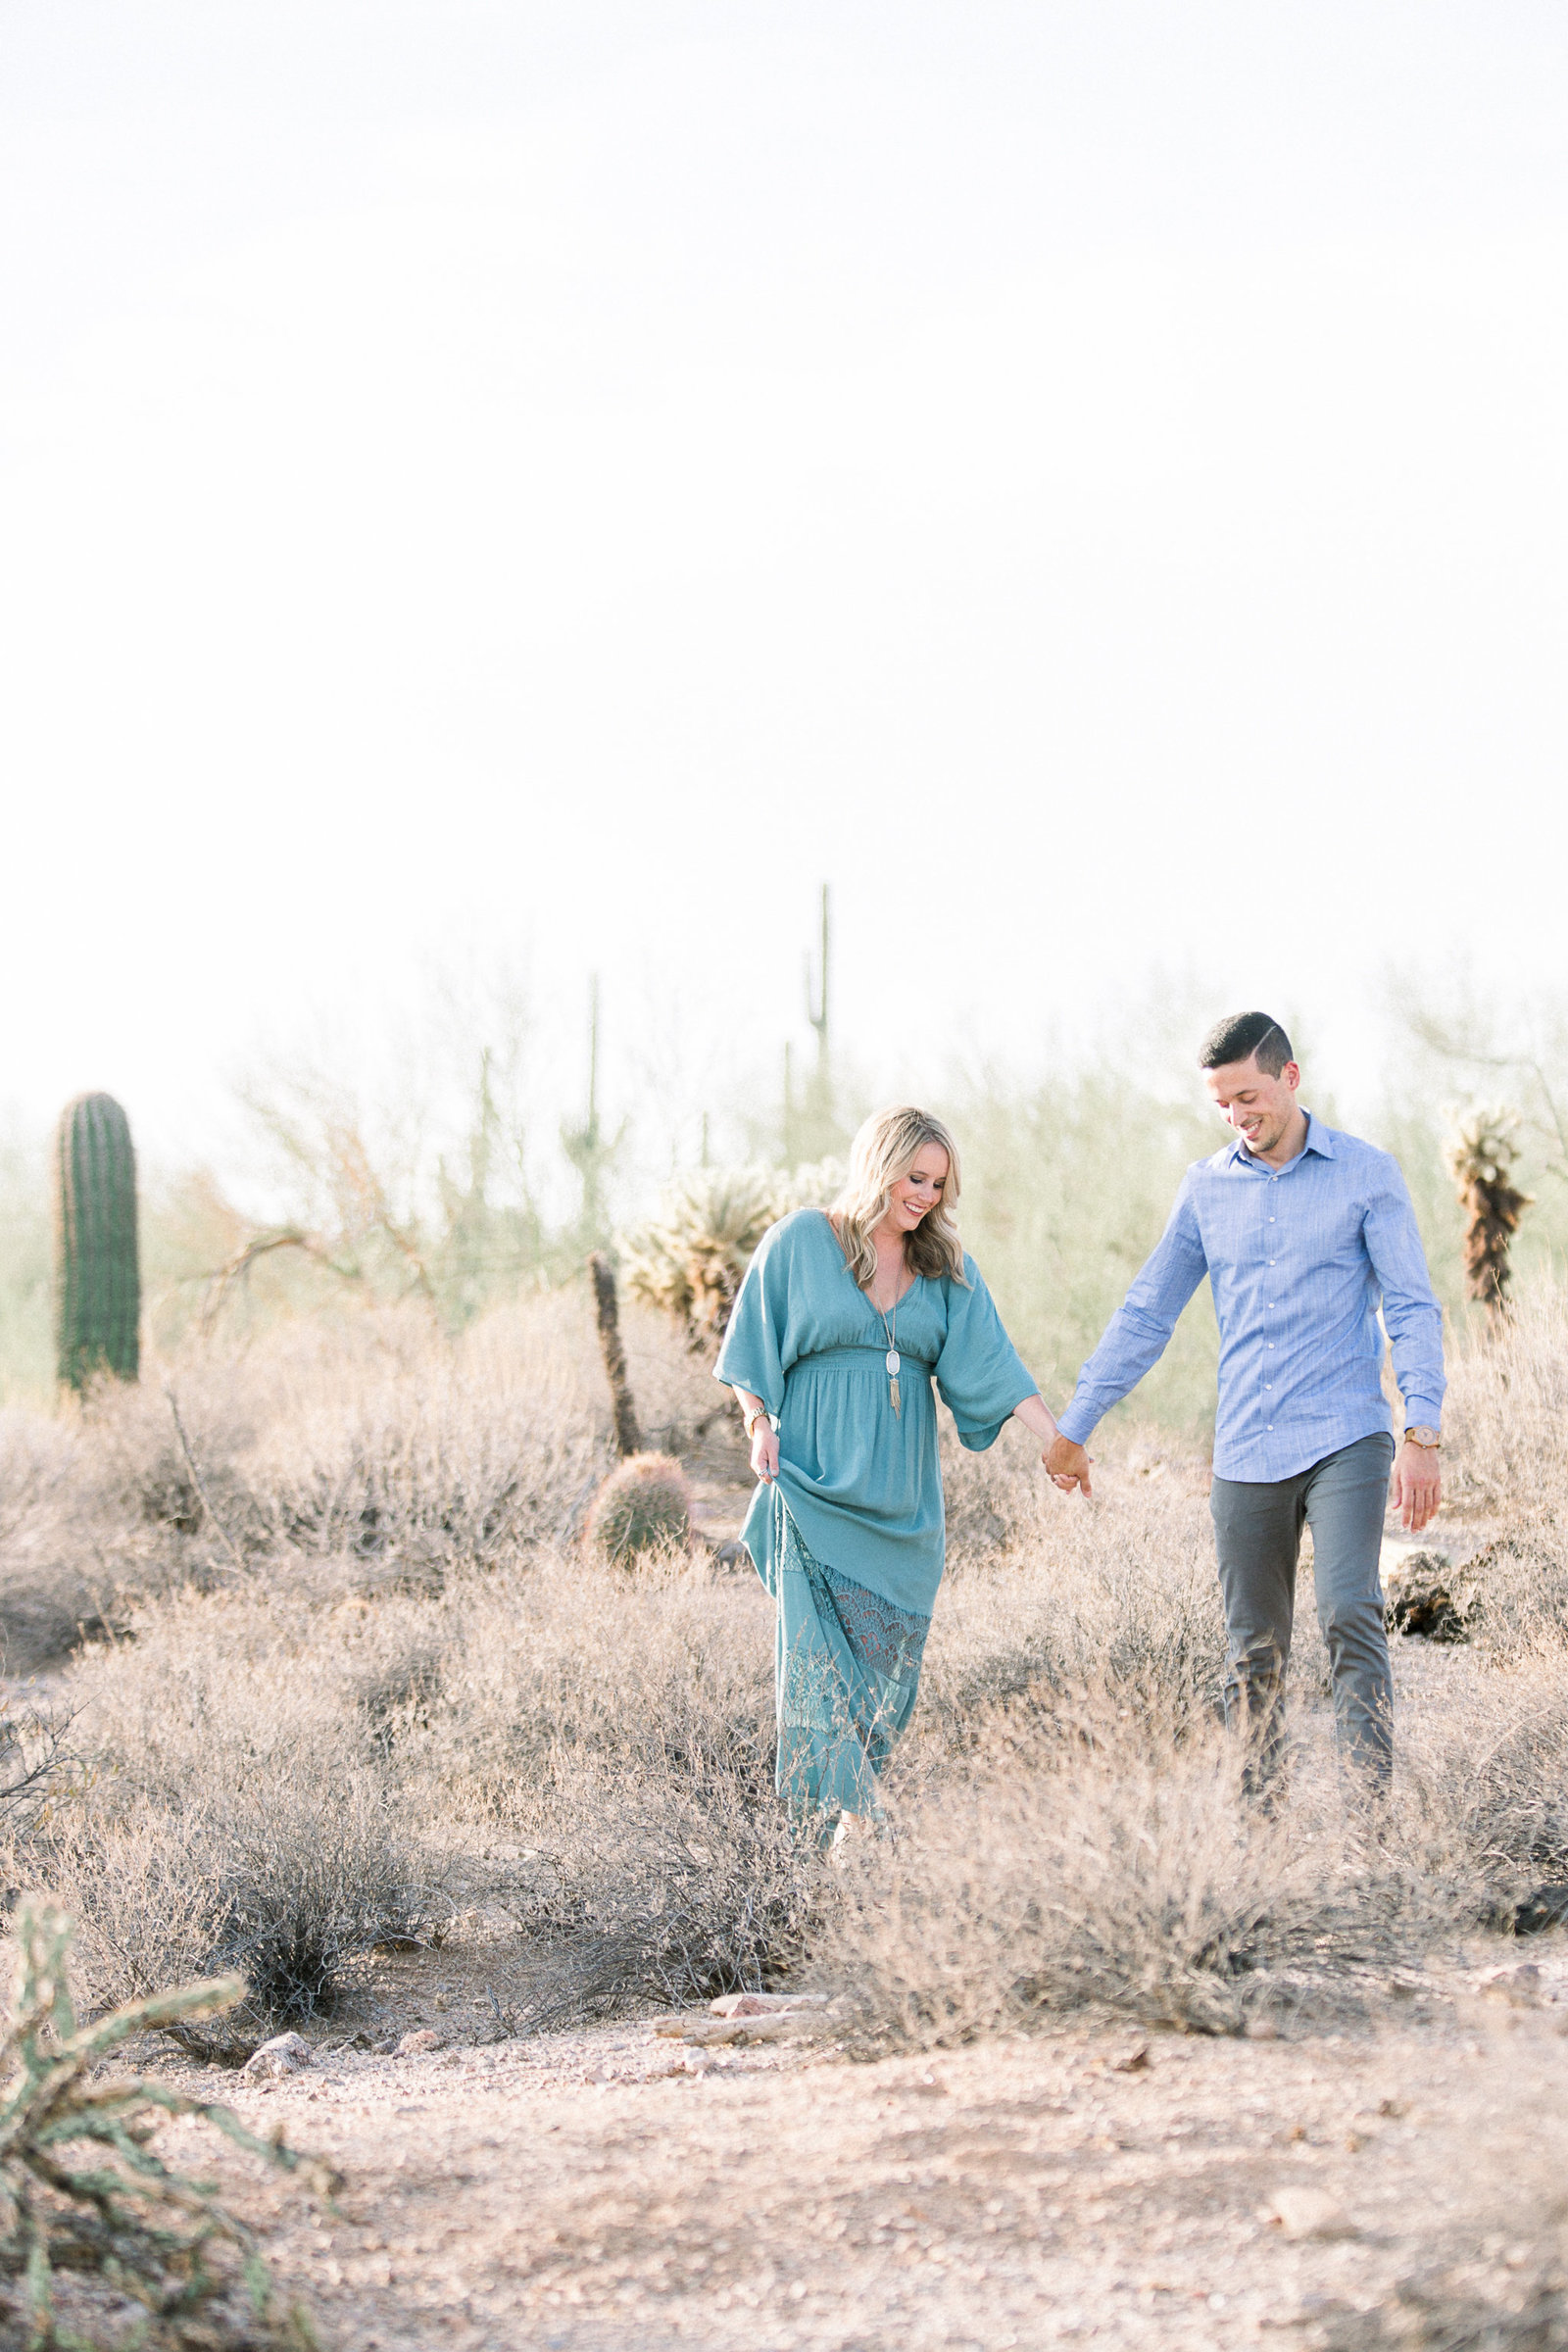 AlyKirkPhoto-Leslie-Zach-Engagement-Session-Wind-Cave-Trail-Mesa-Arizona-Photographer-0021